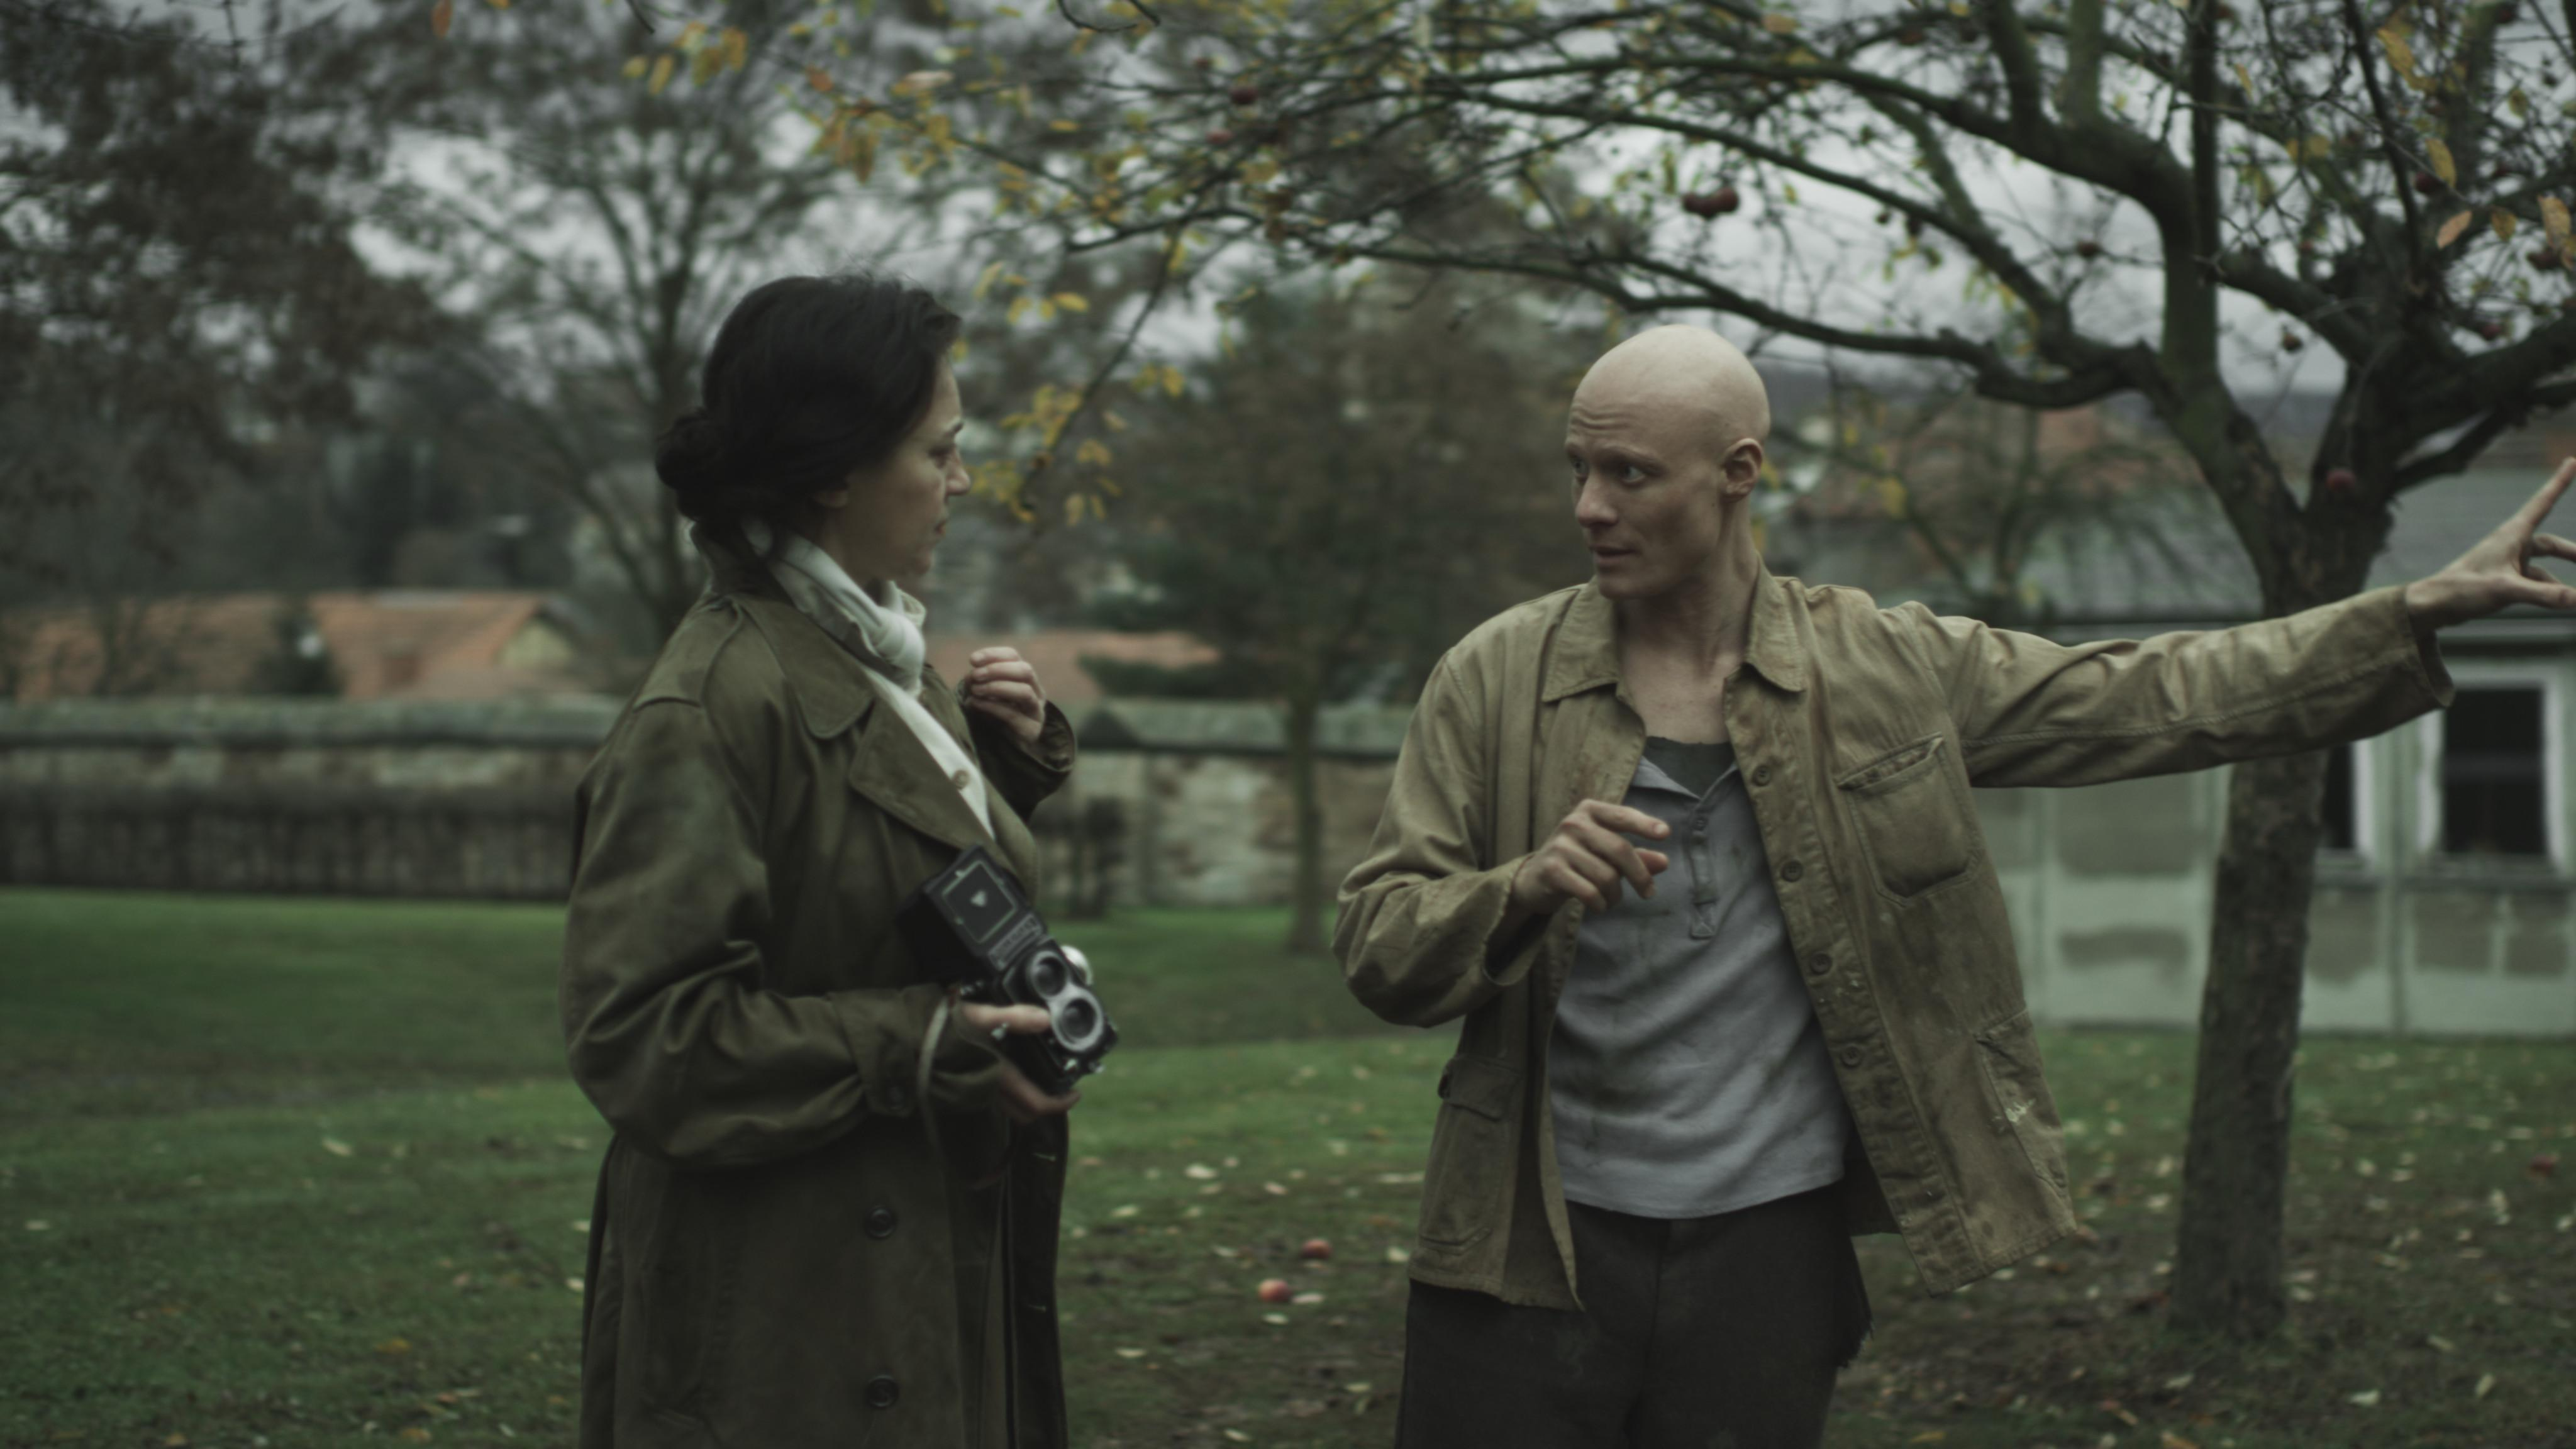 In an outdoor setting, a young bald person reaches their left arm out while looking at a feminine person wearing a trench coat and holding a camera.